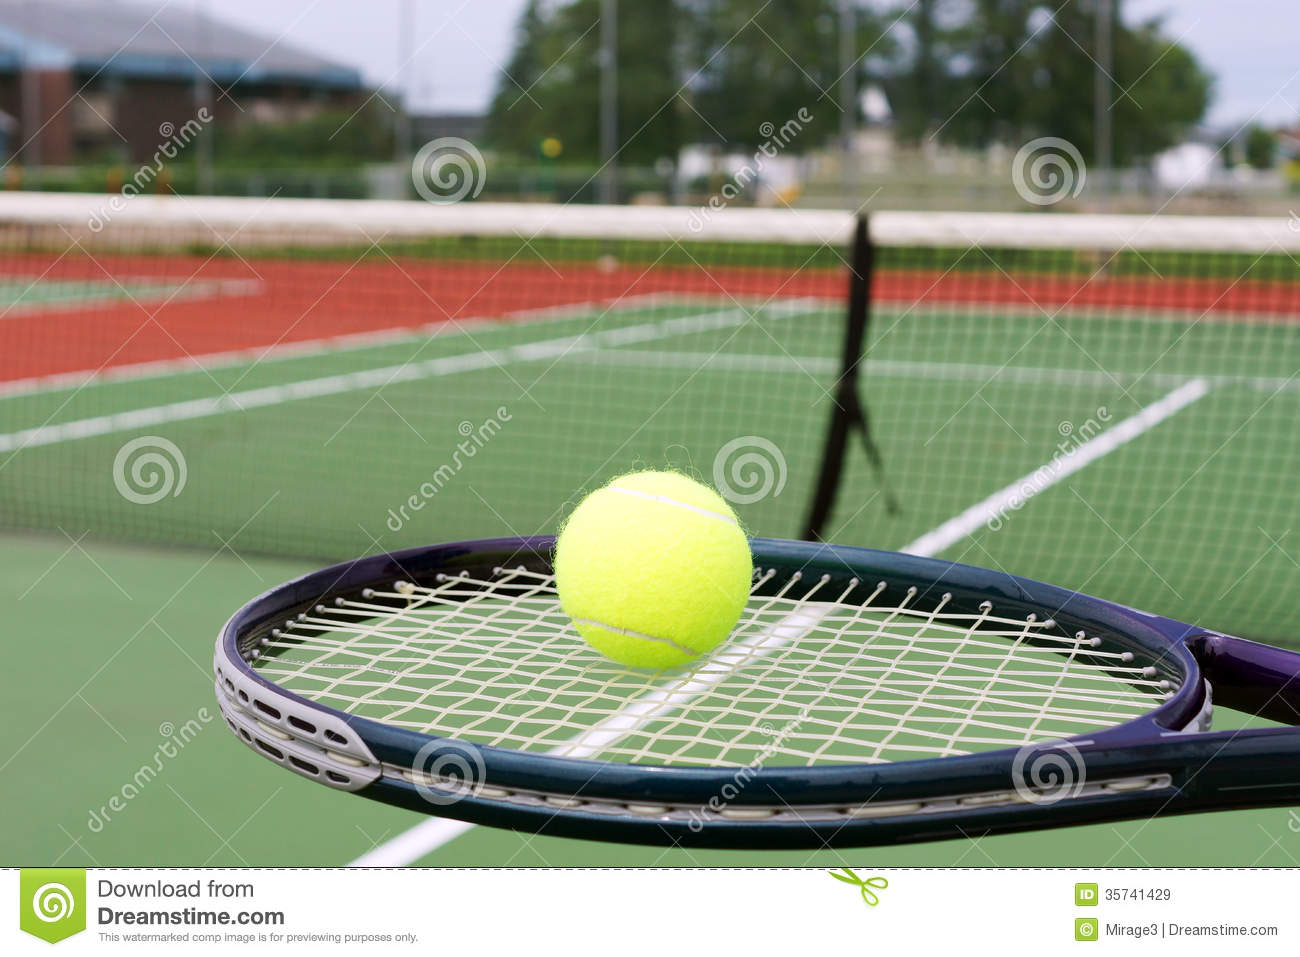 Tennis racket and ball on court